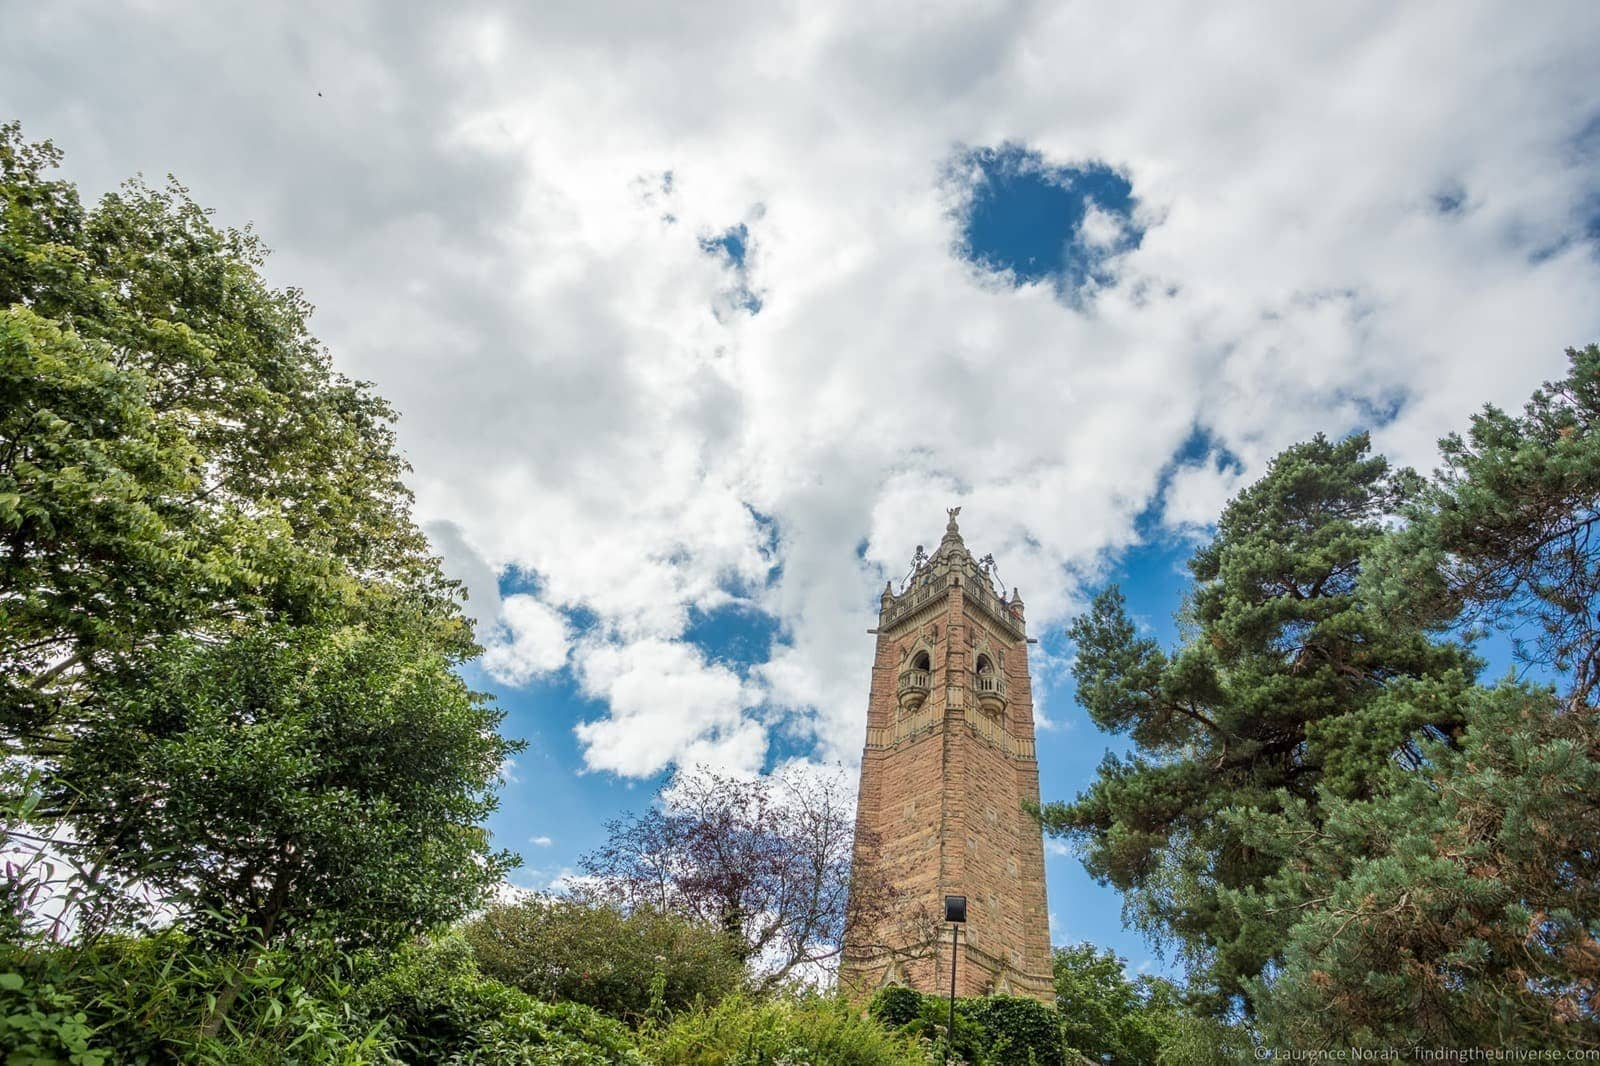 things to do in Bristol - Cabot Tower Bristol